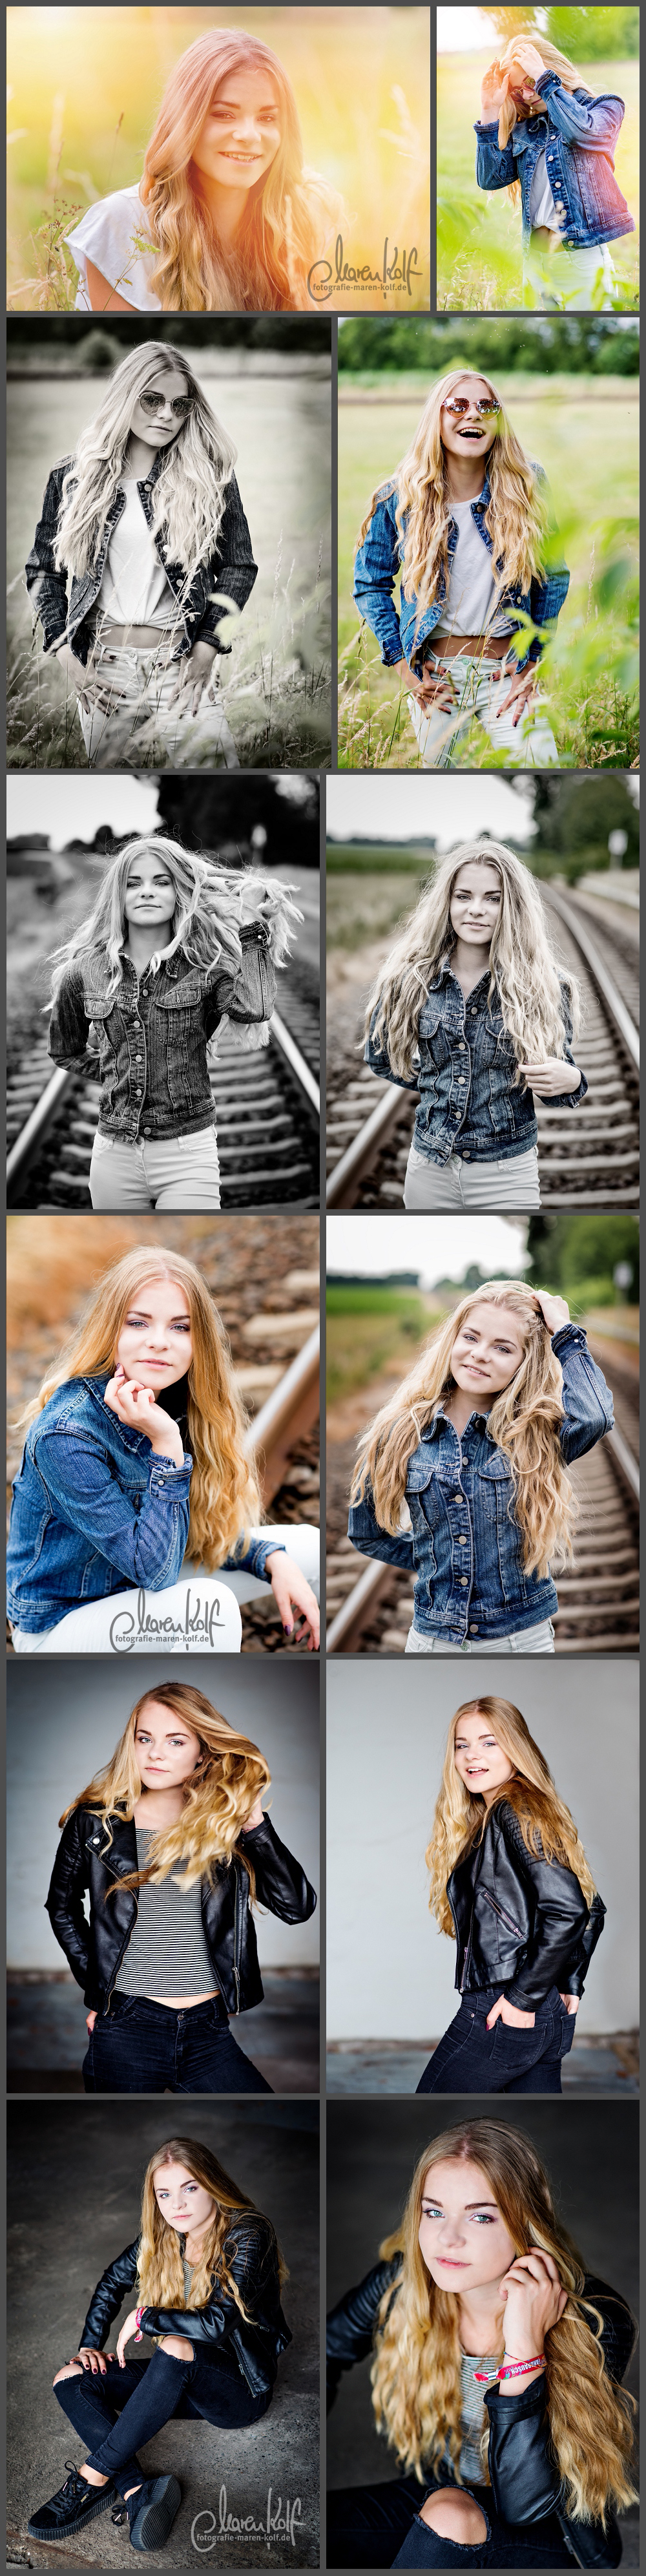 outdoorportraits-streetlife-fotografie-hannover-teenager-maren-kolf-wedemark-blog